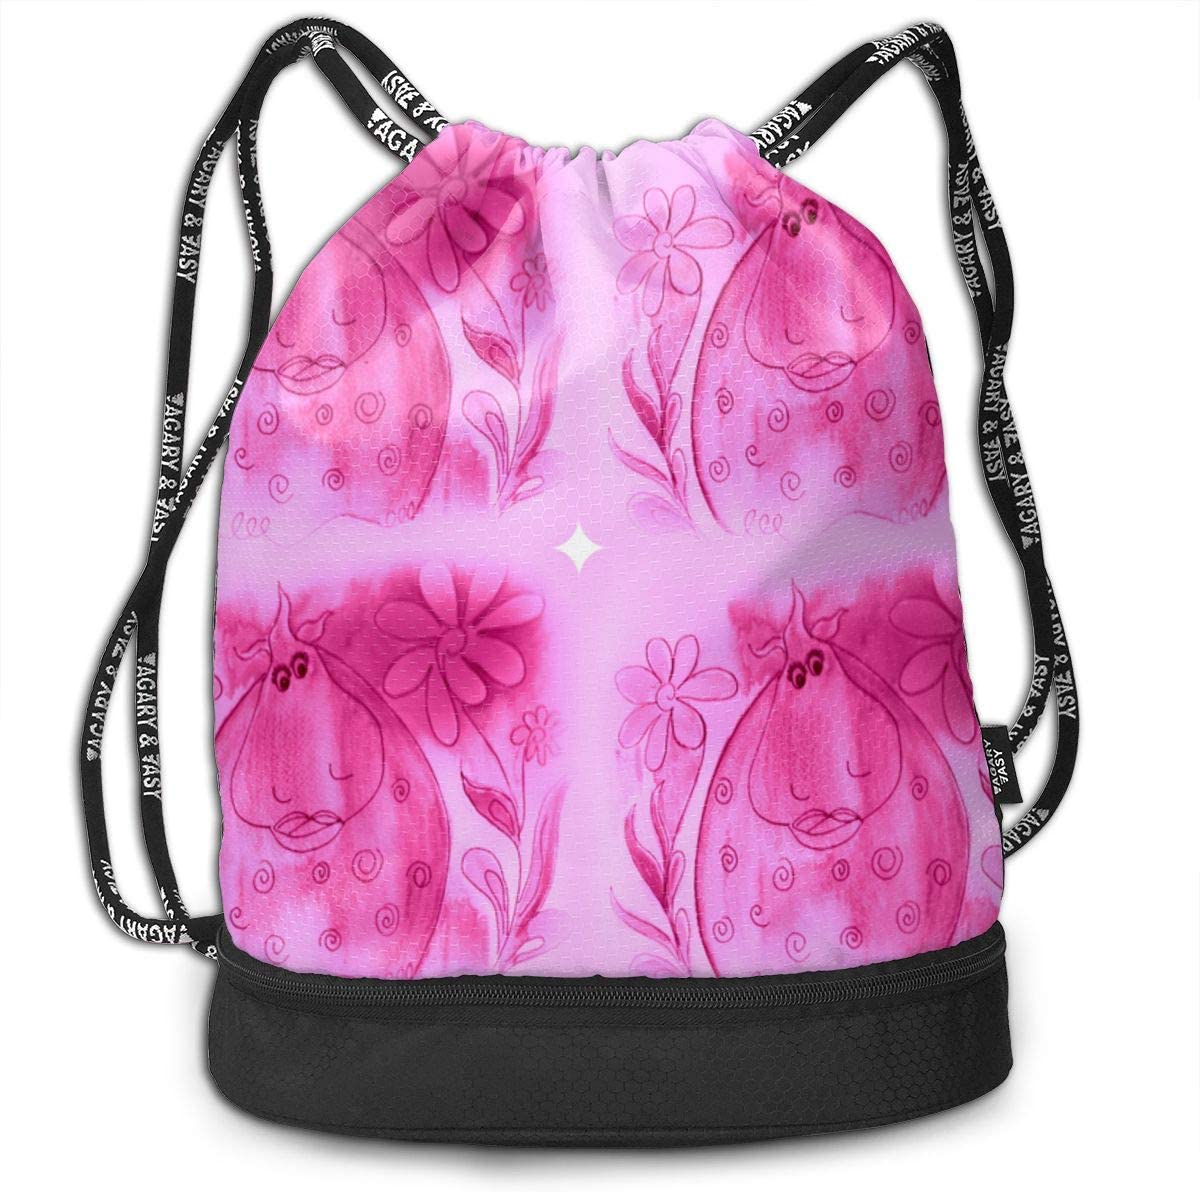 Hilda Splash Pink Daisys Drawstring Backpack Sports Athletic Gym Cinch Sack String Storage Bags for Hiking Travel Beach